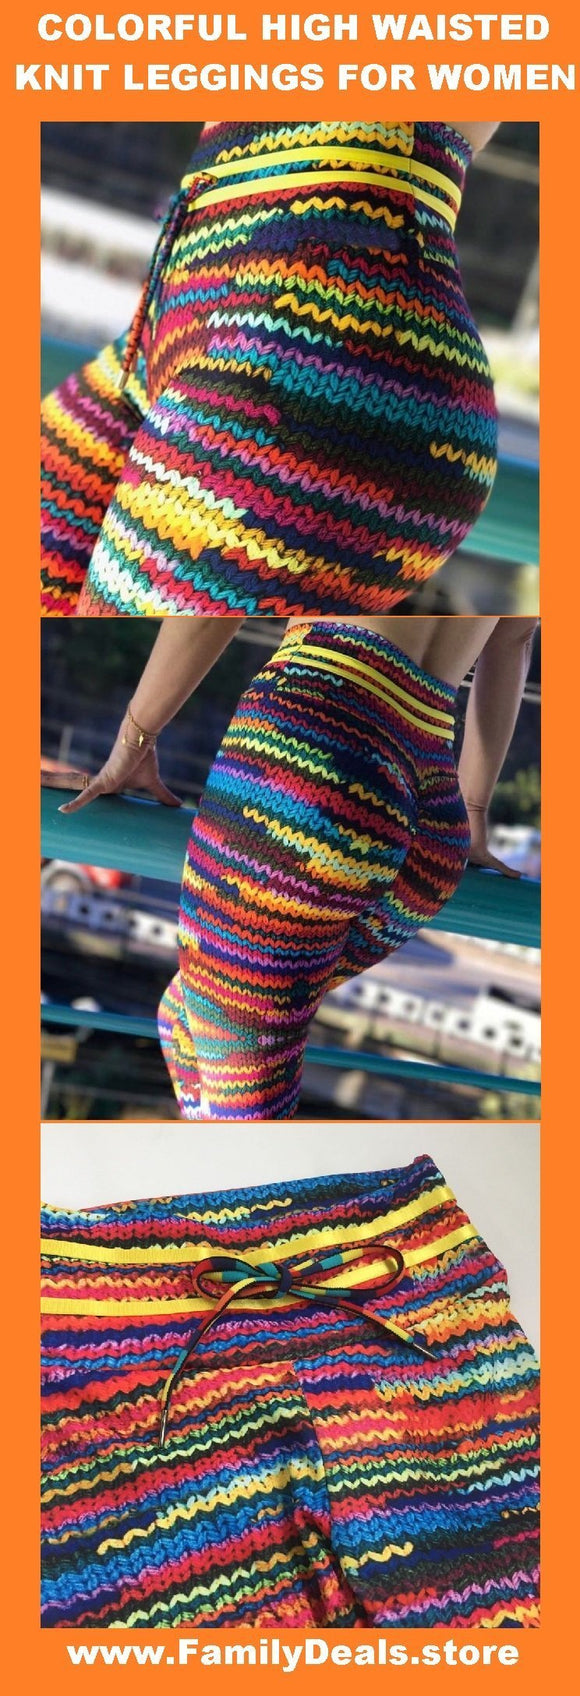 Family Deals clothing Women's colorful striped knit cotton wool yoga / gym / dance leggings - Also in Plus Size